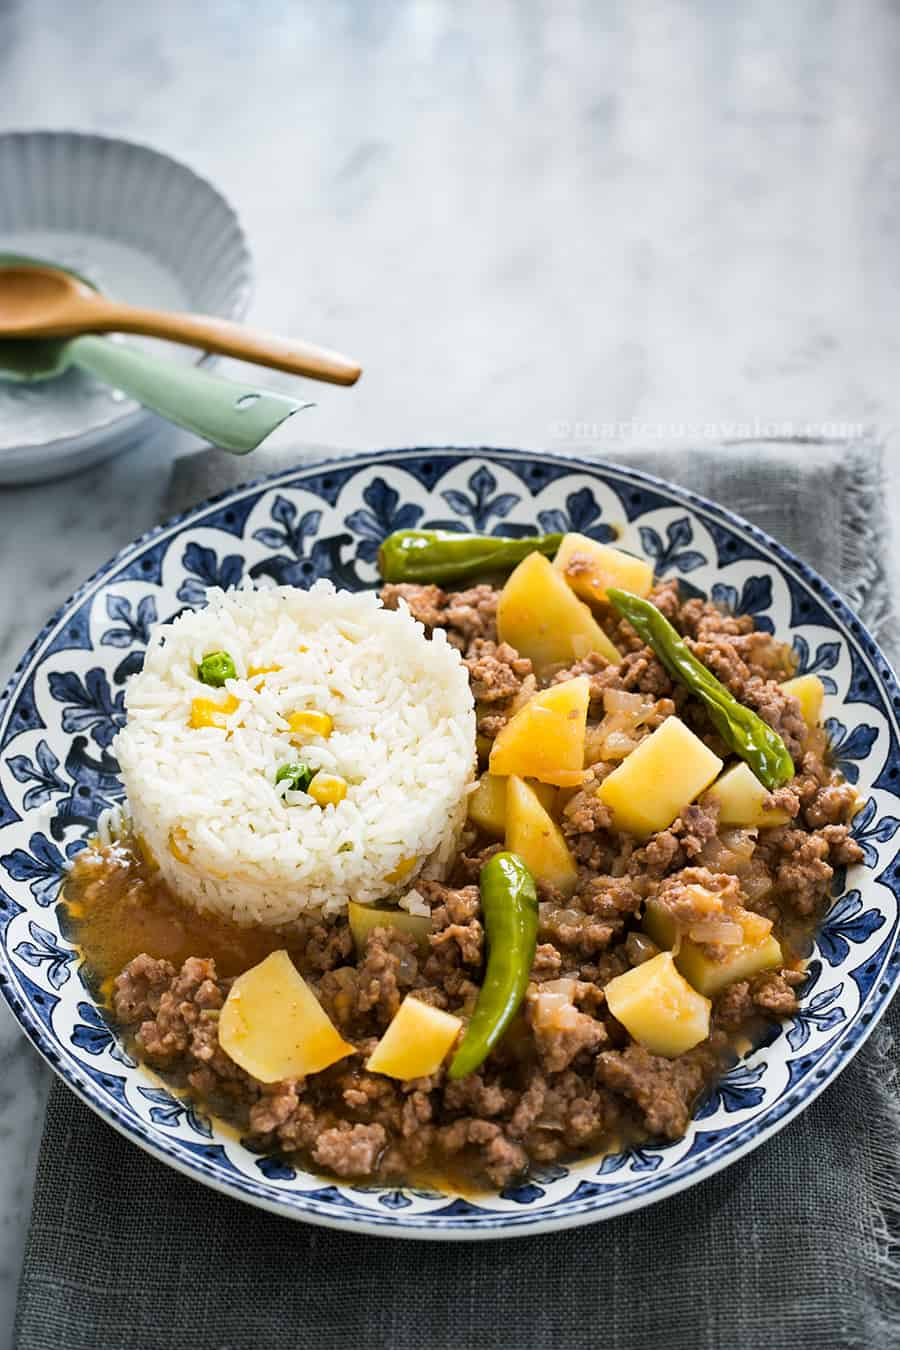 Mexican picadillo recipe with potatoes and white rice as a side dish.